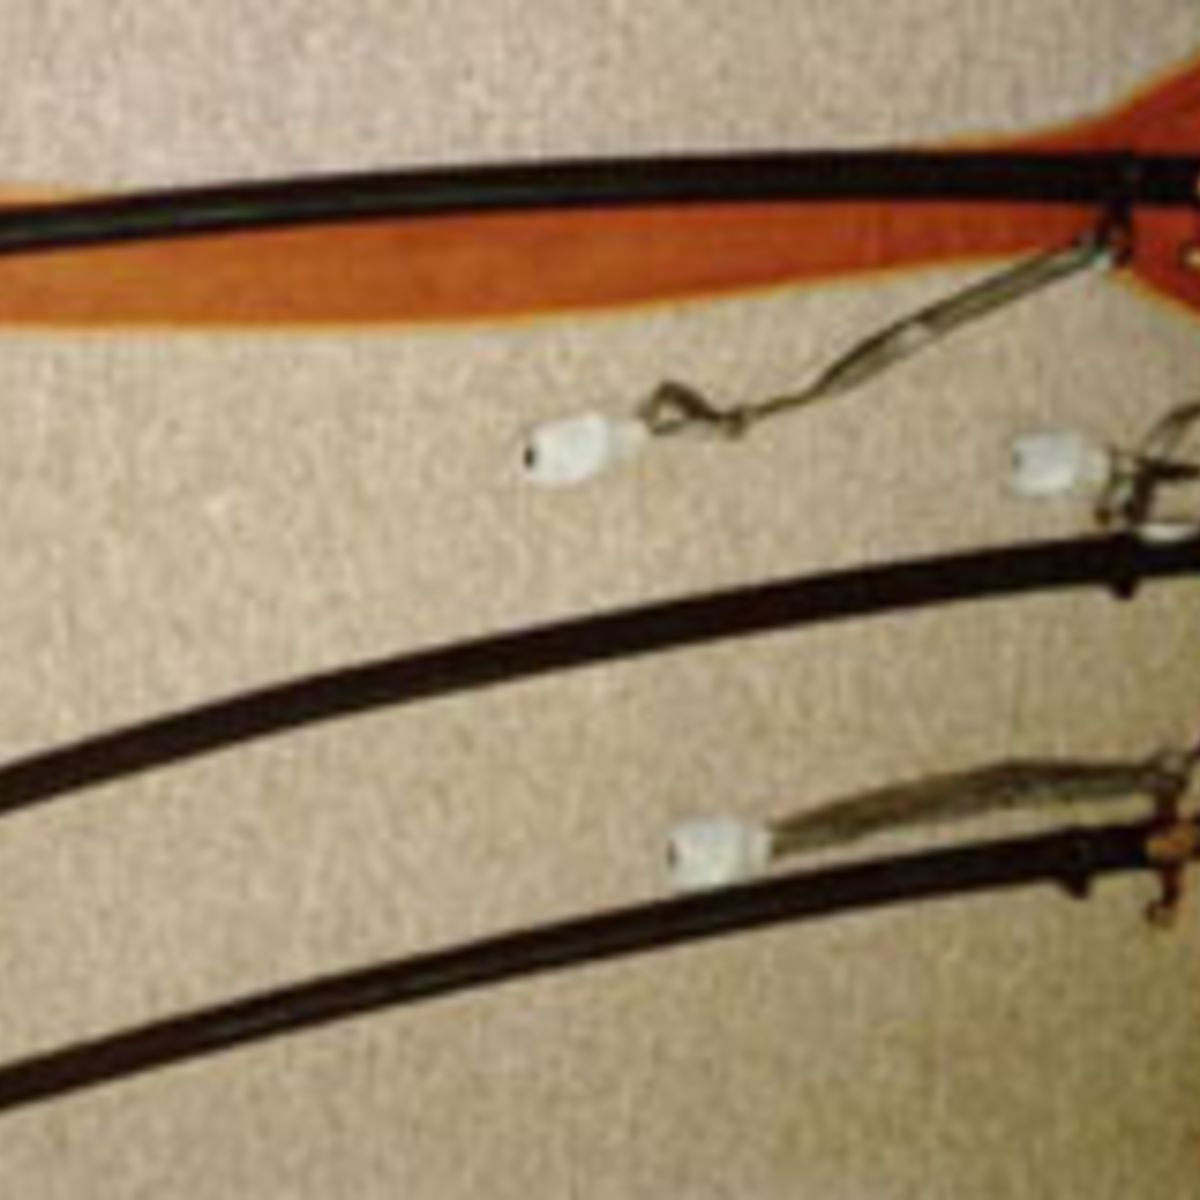 GERMAN ARMY OFFICER'S SWORDS. TOP WITH ORIGINAL PURCHASE FELT BAG.